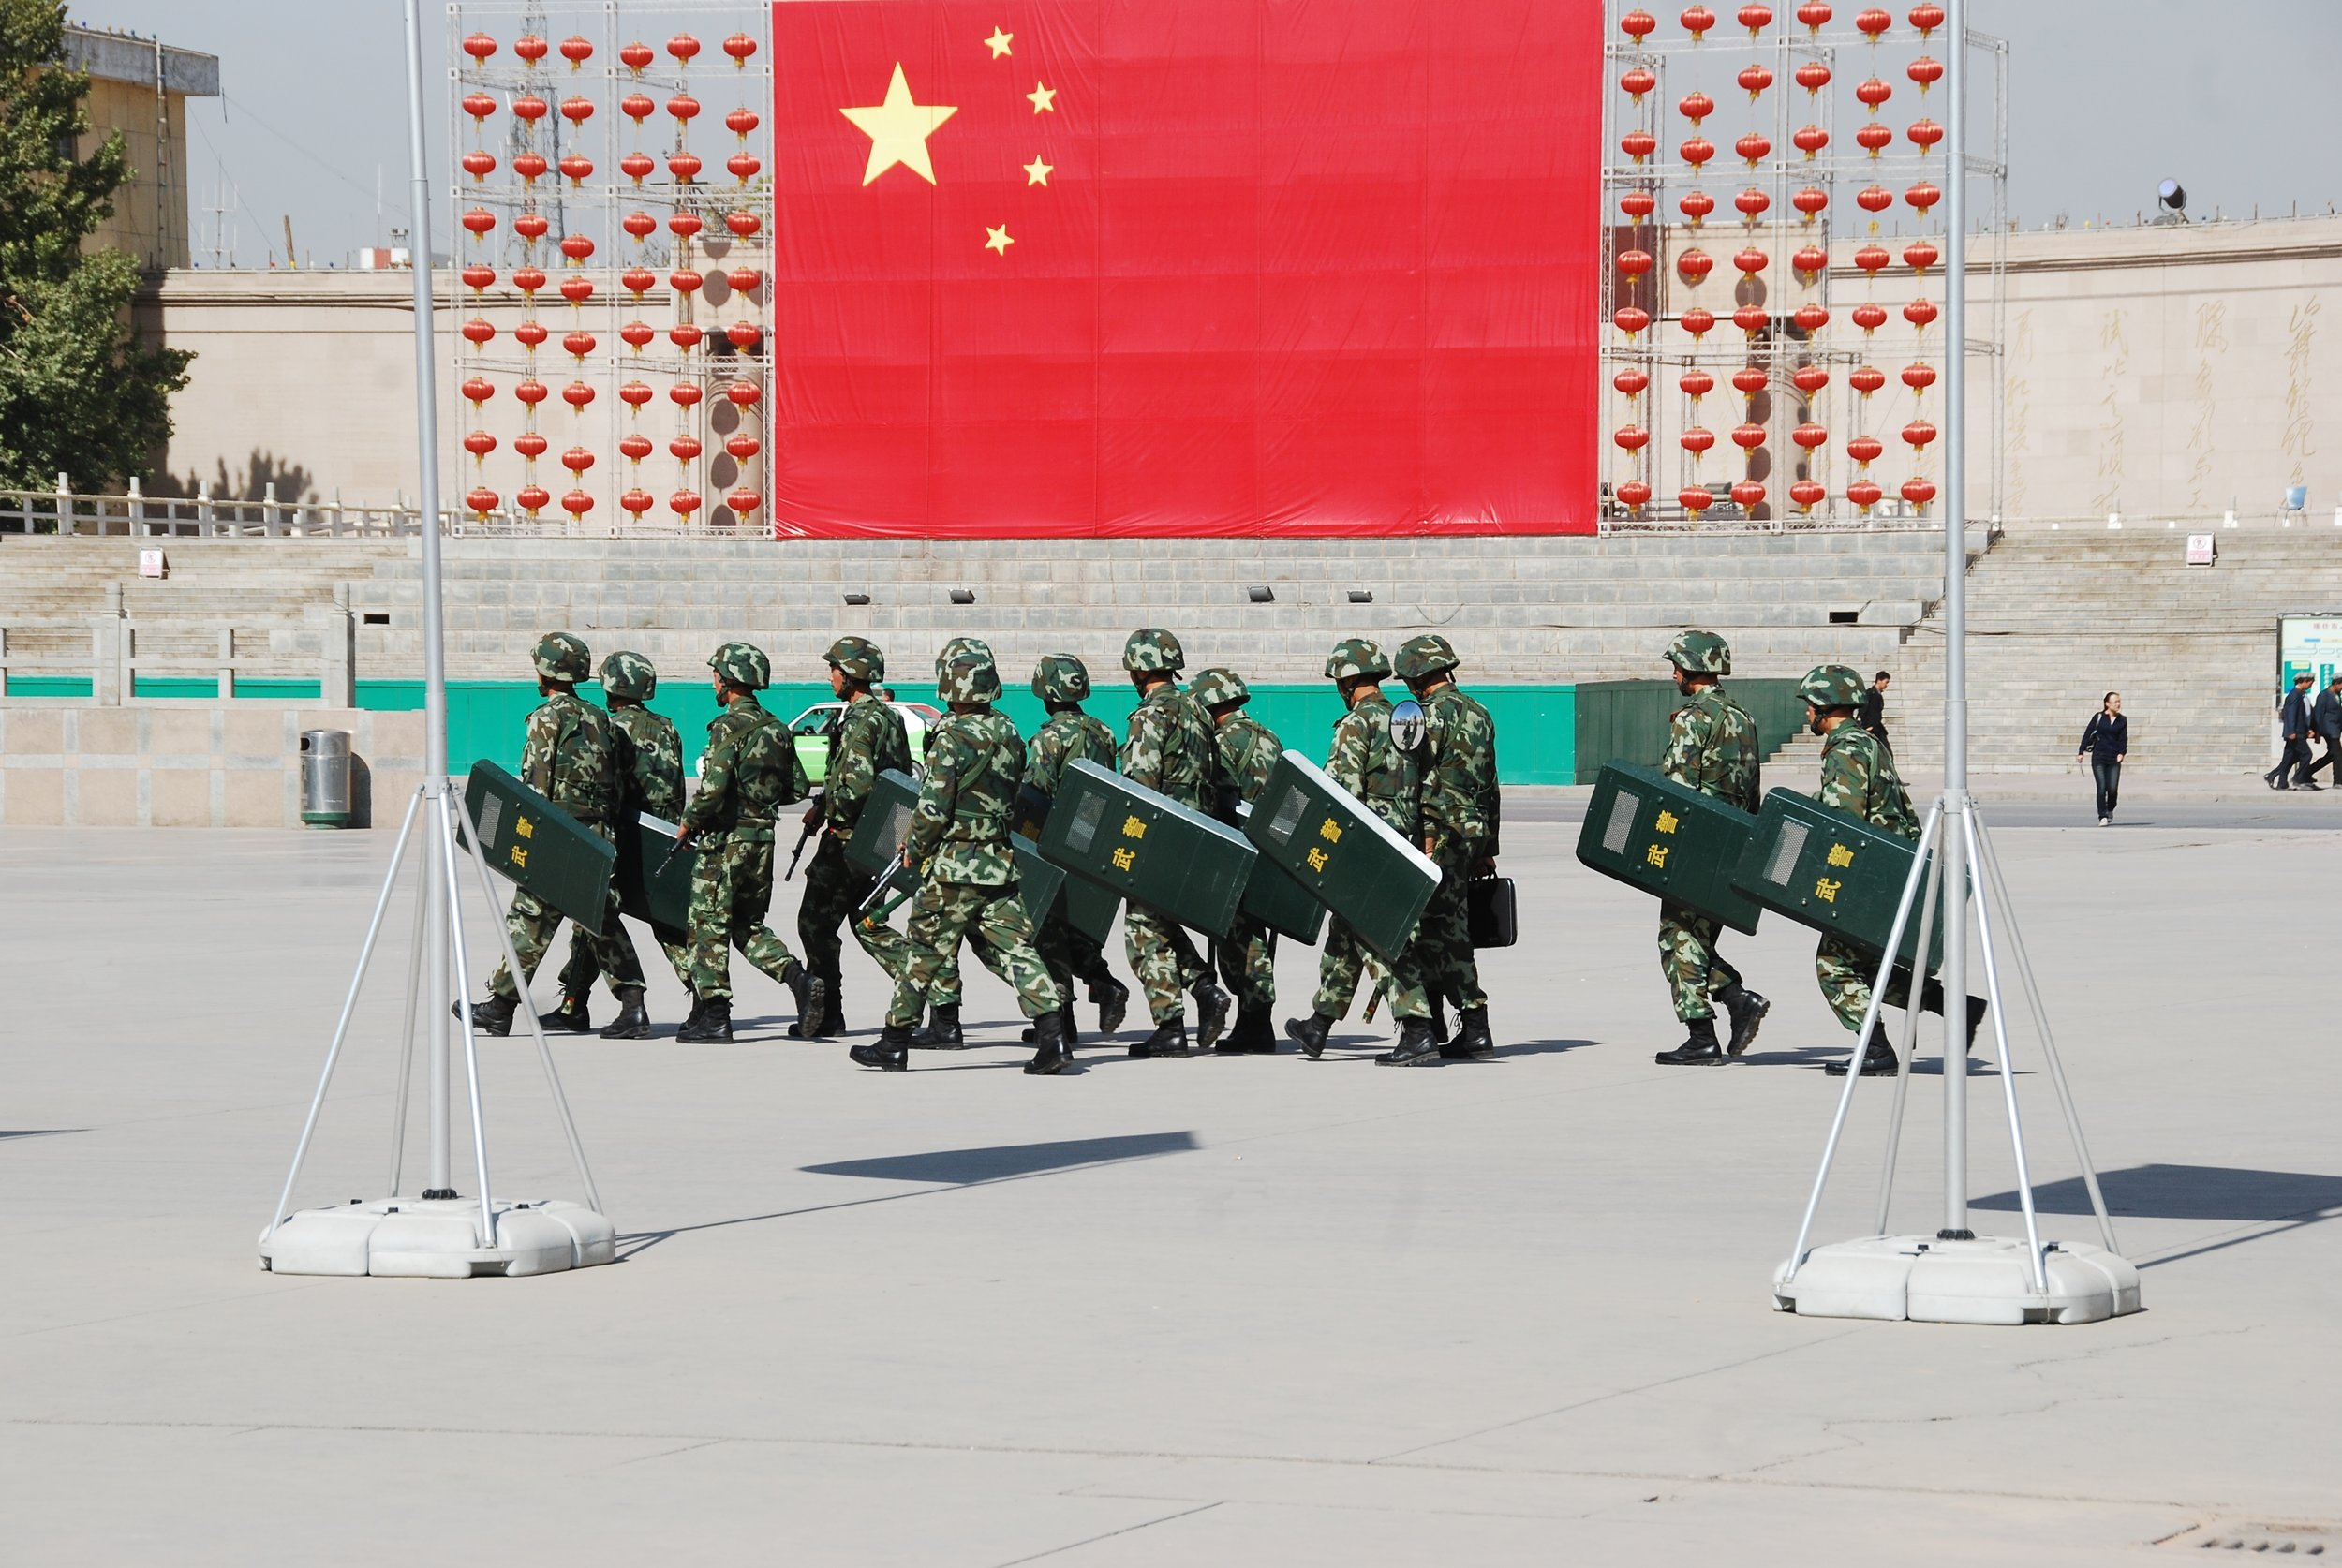 Police Tactical Unit officers on the march in Kashgar's city square.  Antoine 49 /Flickr.